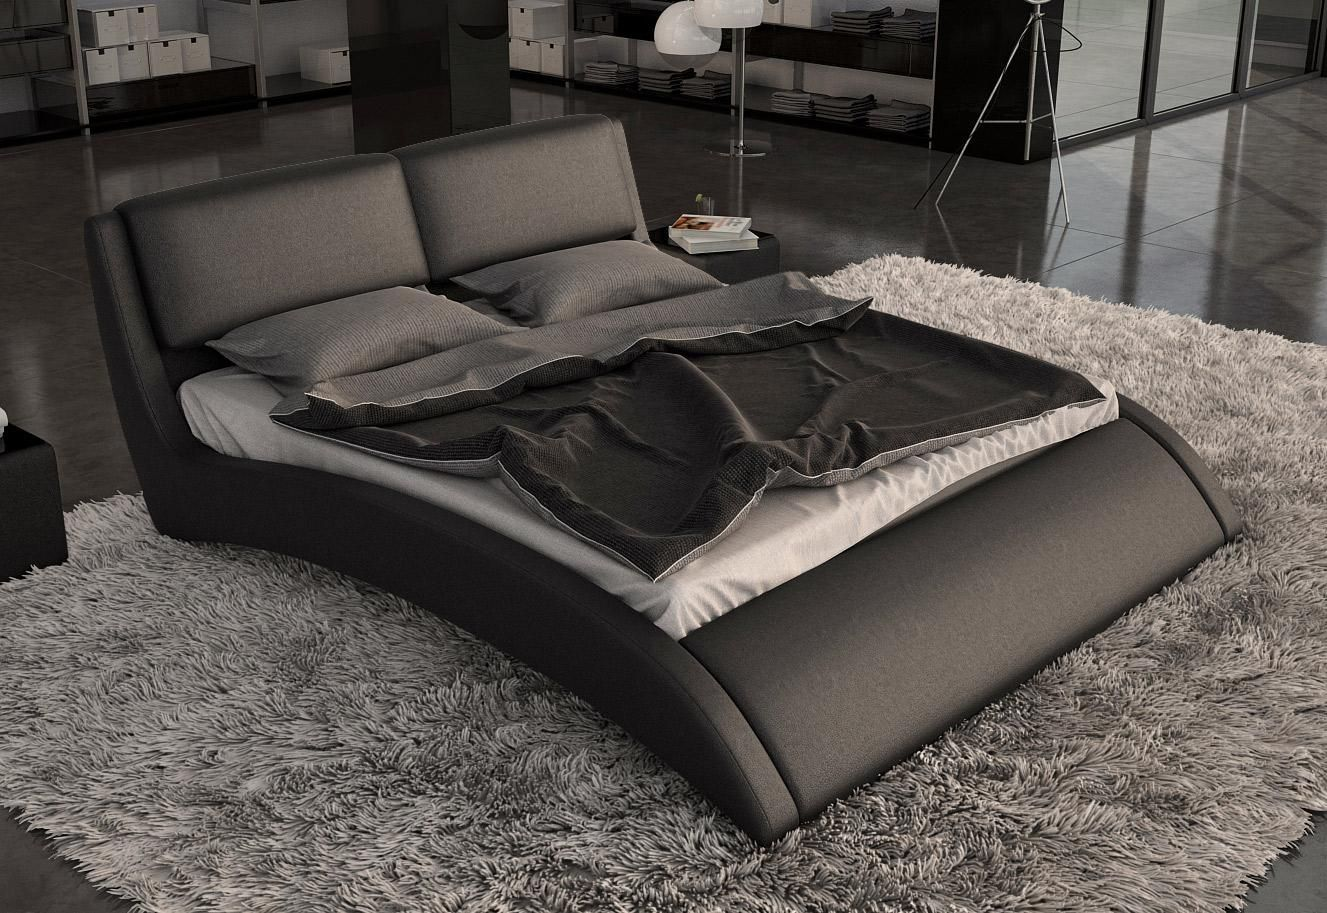 dcb91fb656 Leather Modern Platform Bed El Paso Texas V-VOLO